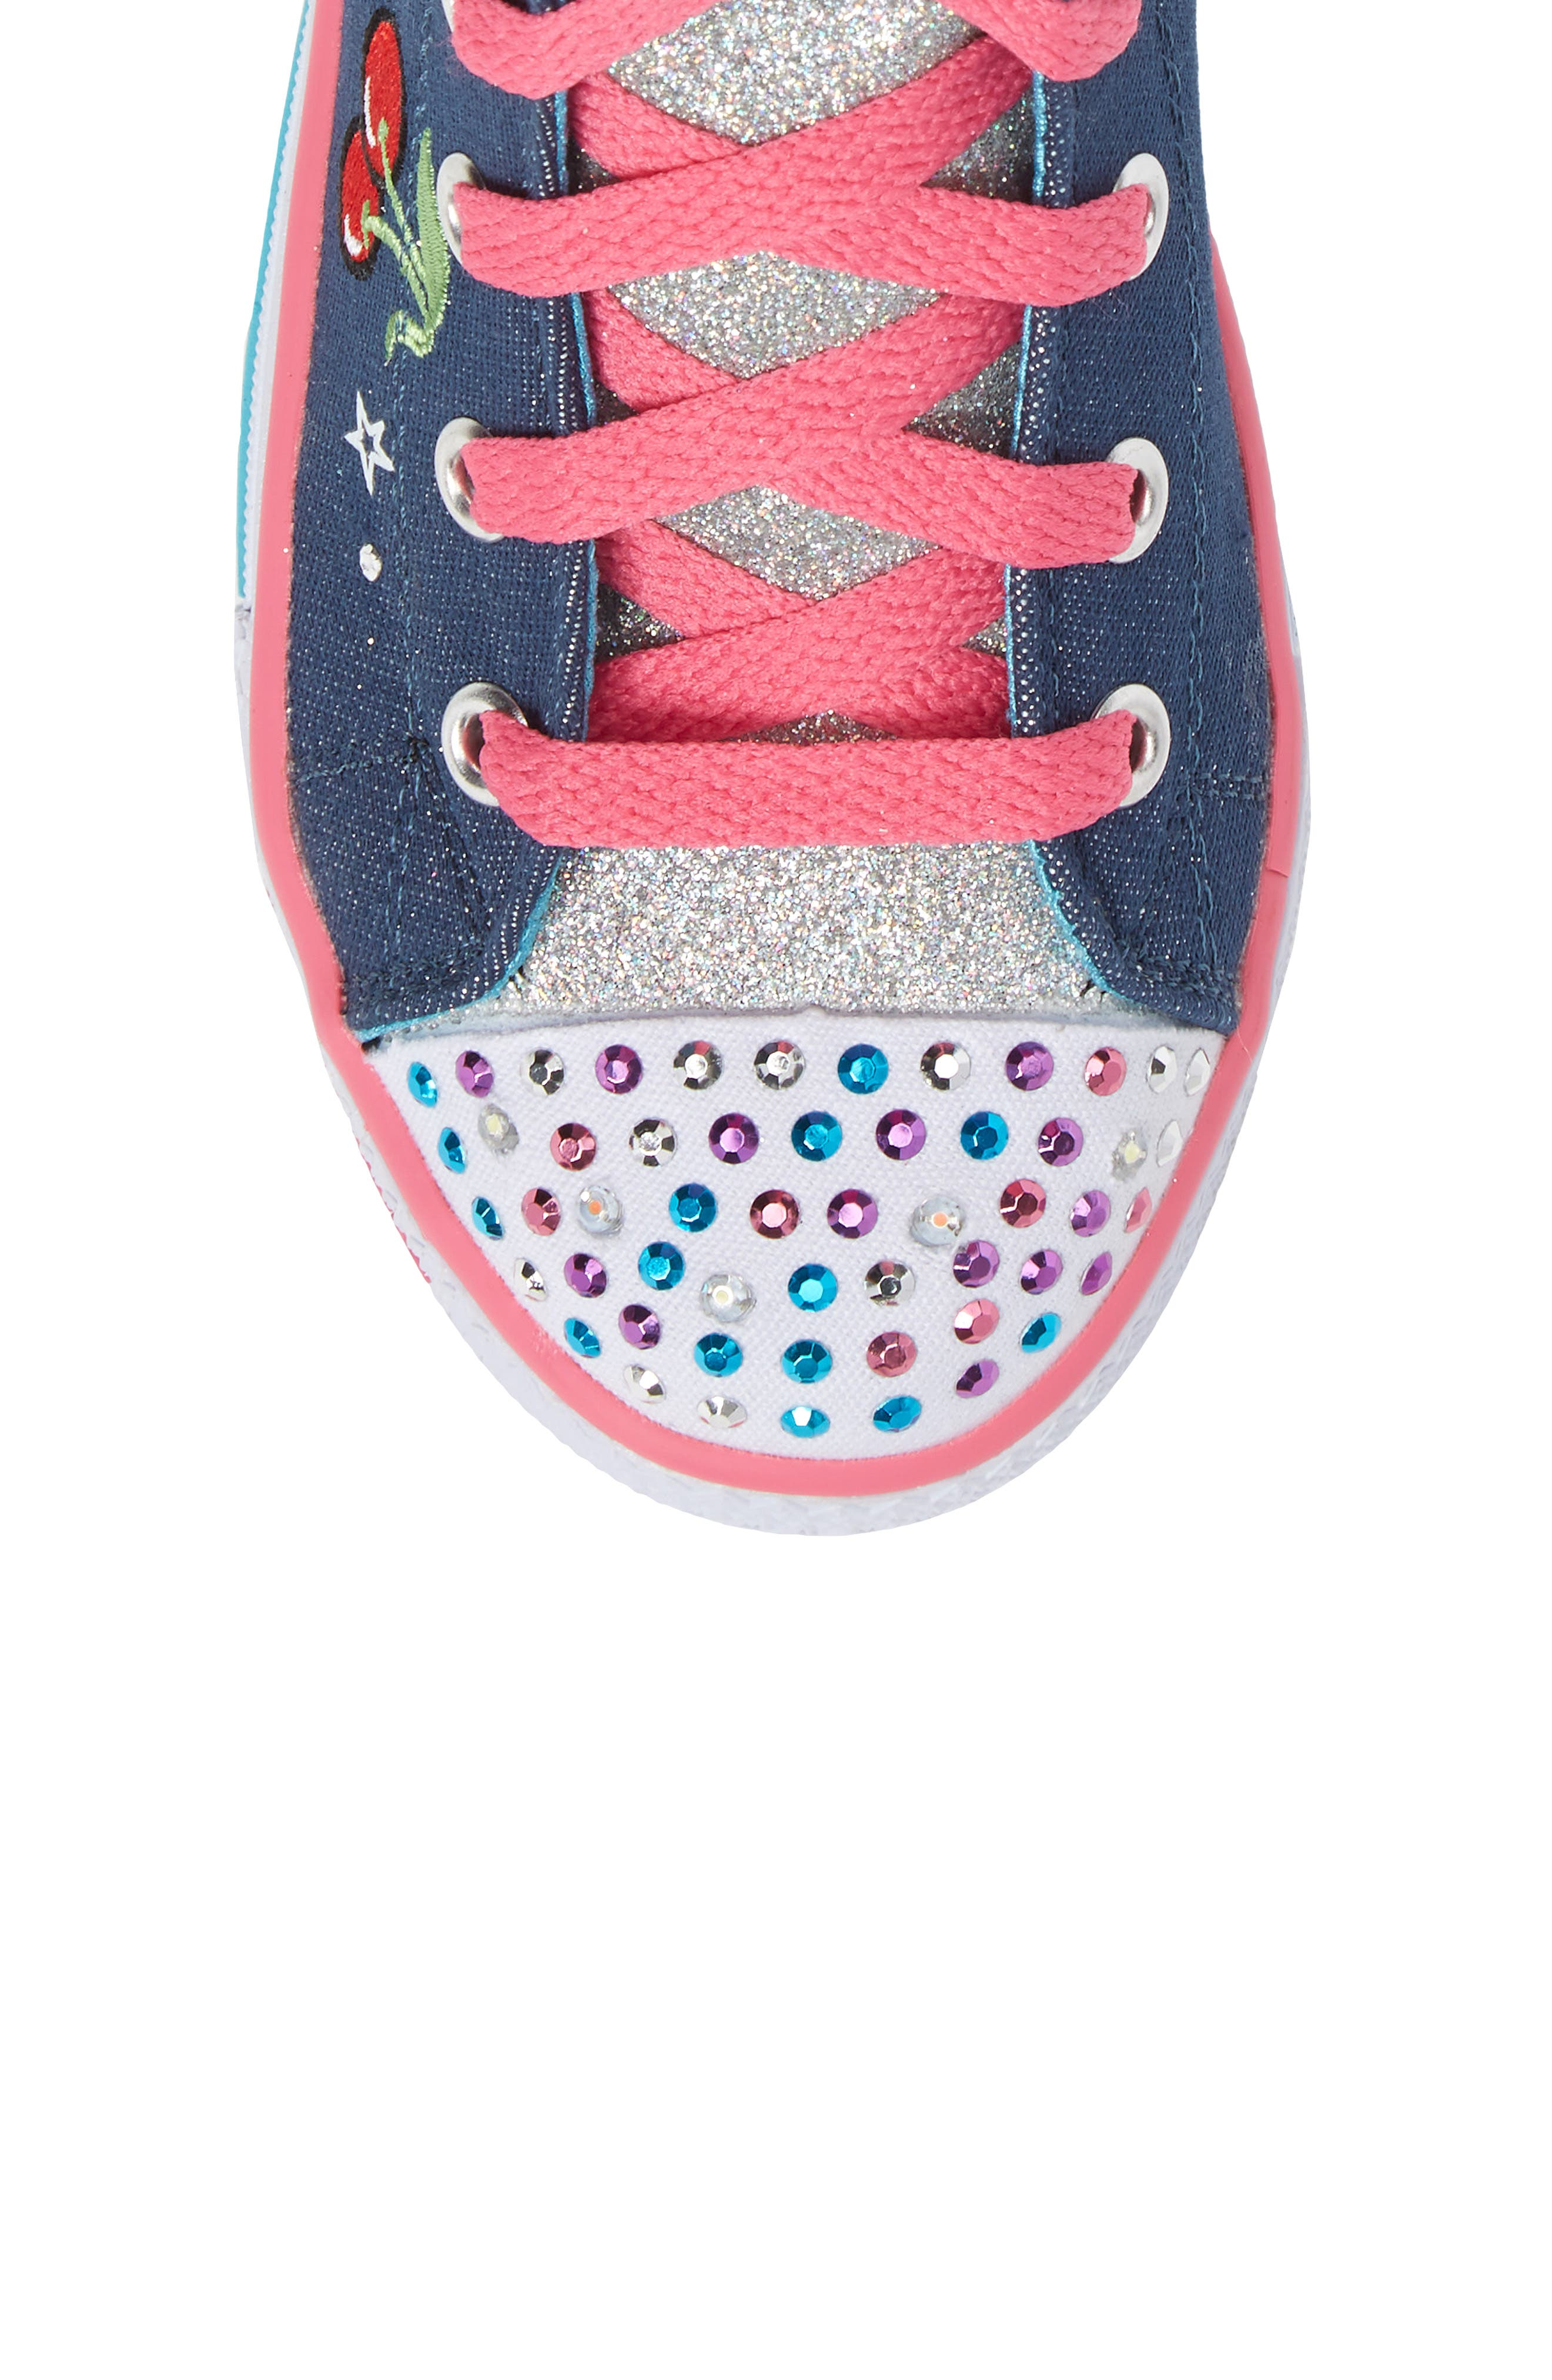 Twinkle Toes Shuffles Ultra High Top Sneaker,                             Alternate thumbnail 5, color,                             468